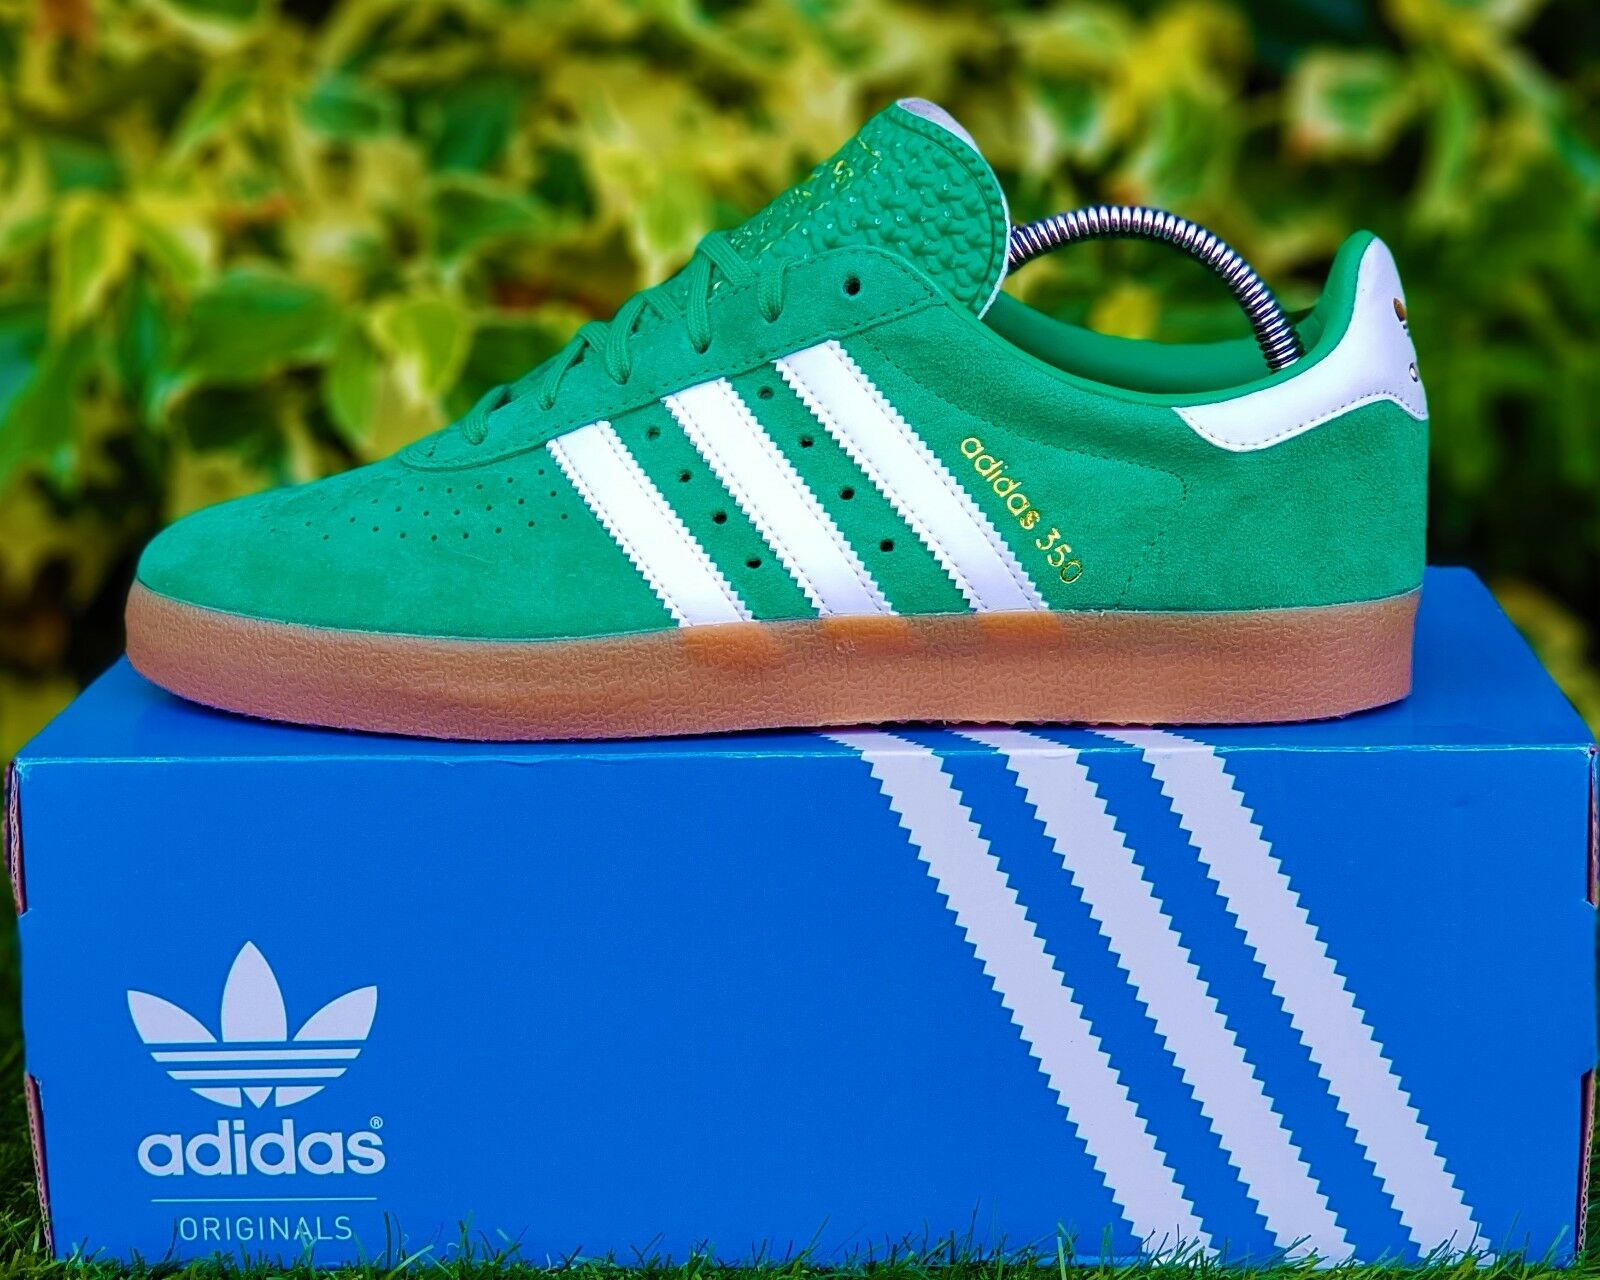 BNWB & Genuine Trainer adidas originals ® 350 Trainer Genuine Retro Green Trainers UK Size 10 77042e